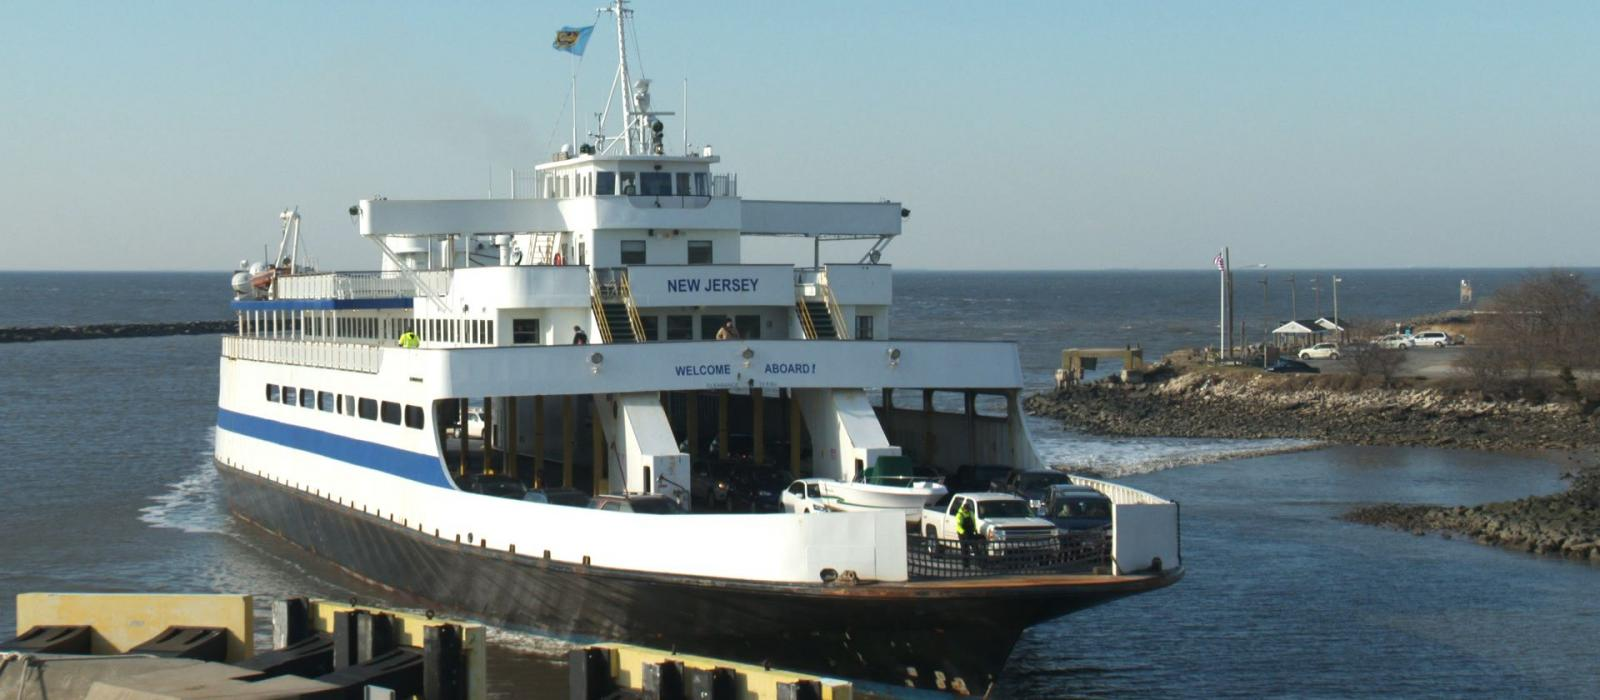 new jersey day | cape may-lewes ferry